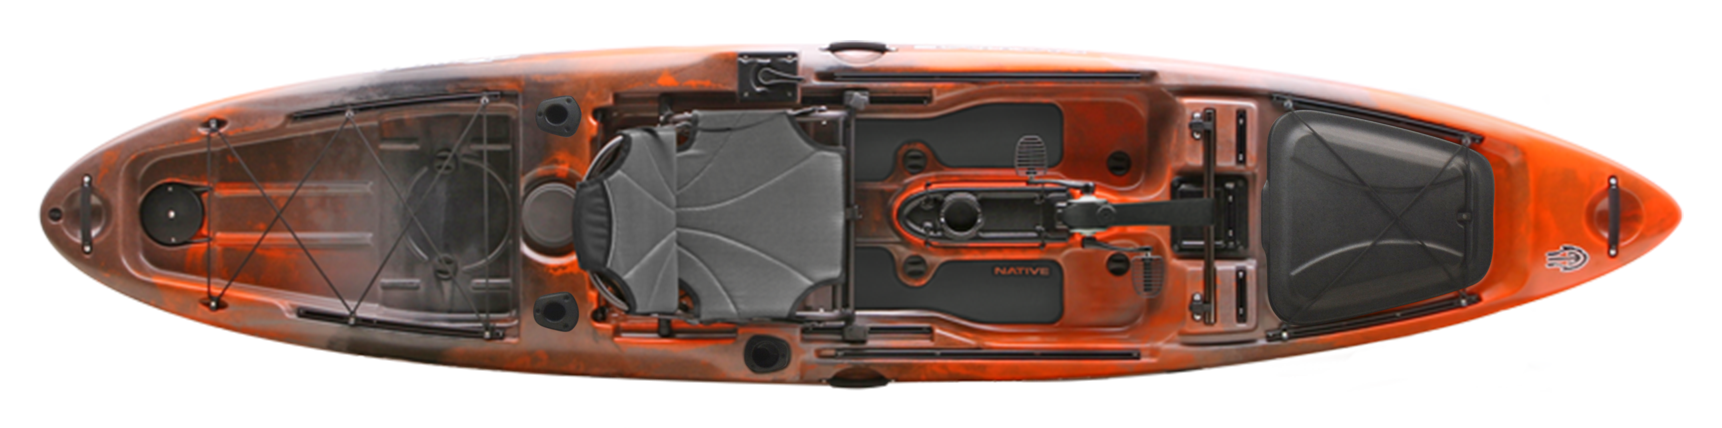 Native Watercraft Slayer Propel 13 DEMO Kayak